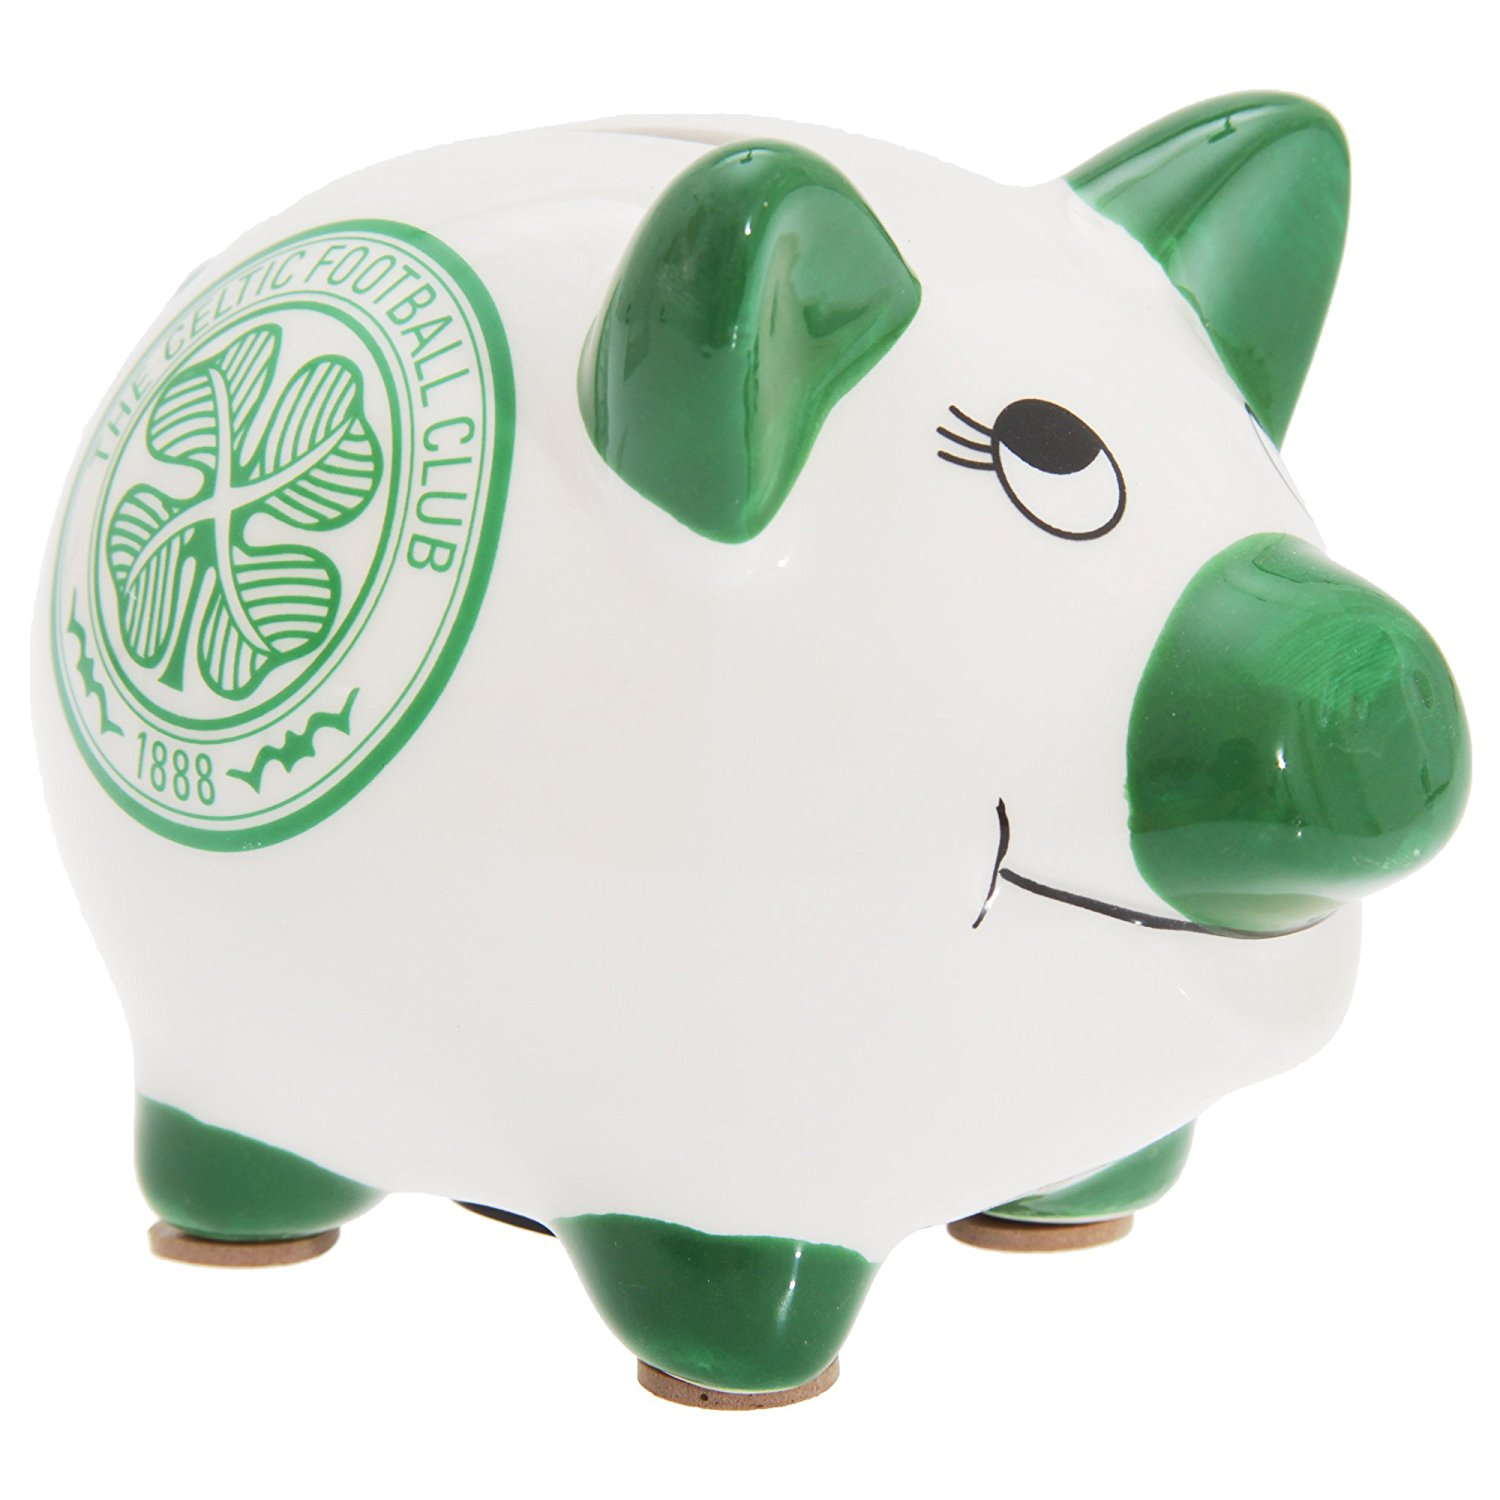 Celtic FC Official Ceramic Football Crest Piggy Bank (One Size) (White/Green)